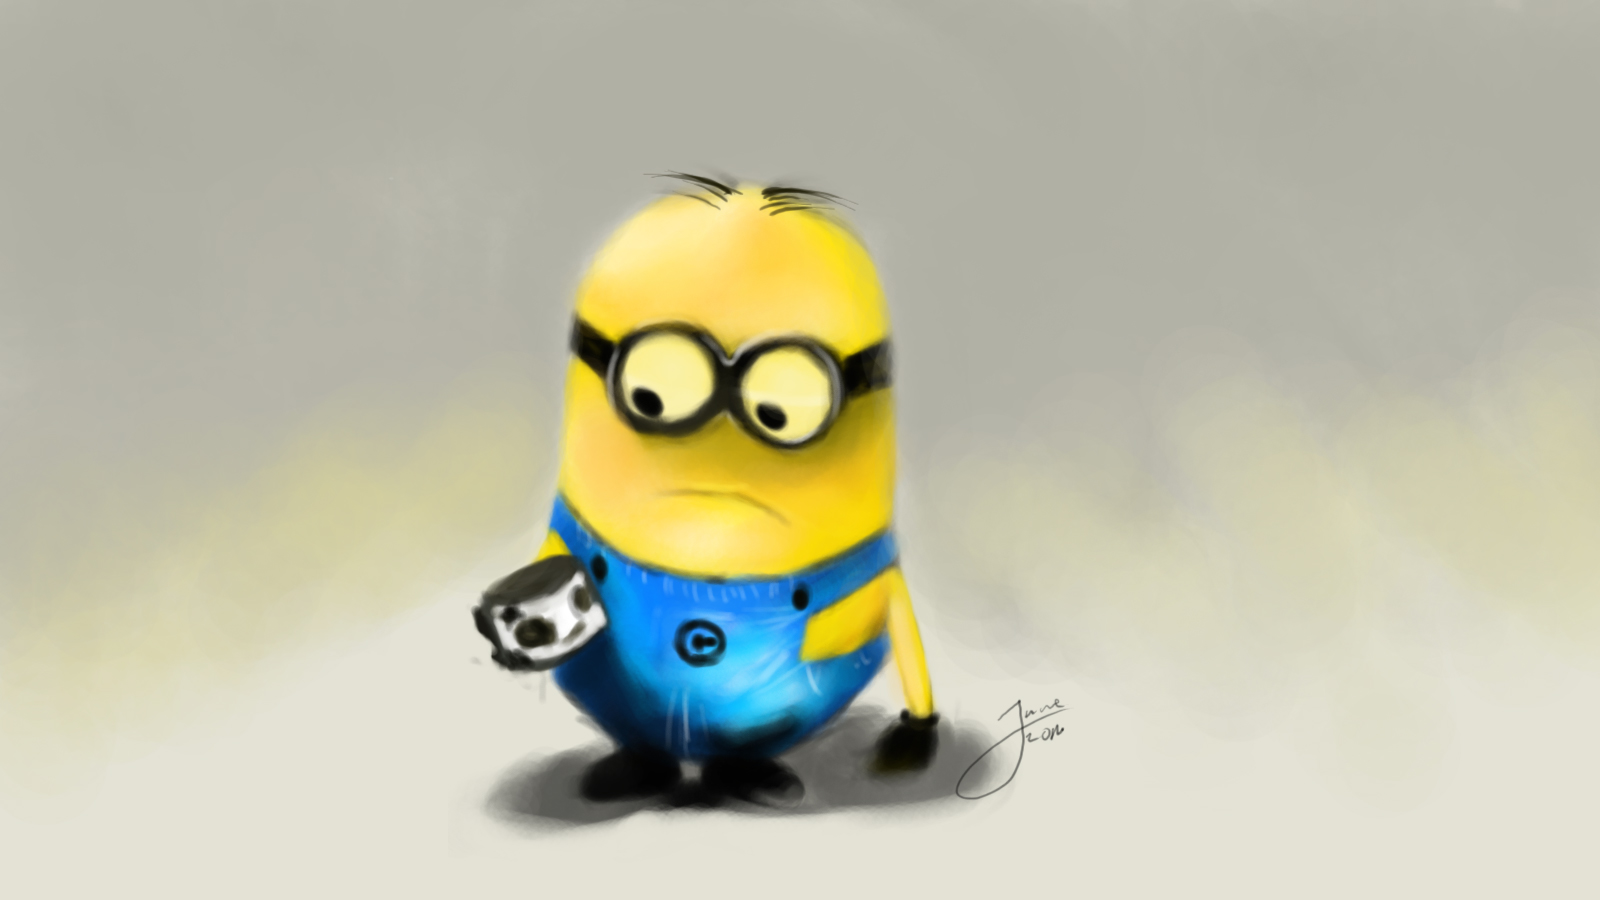 File name minion hd wallpapers dekstop backgrounds pictures to pin on